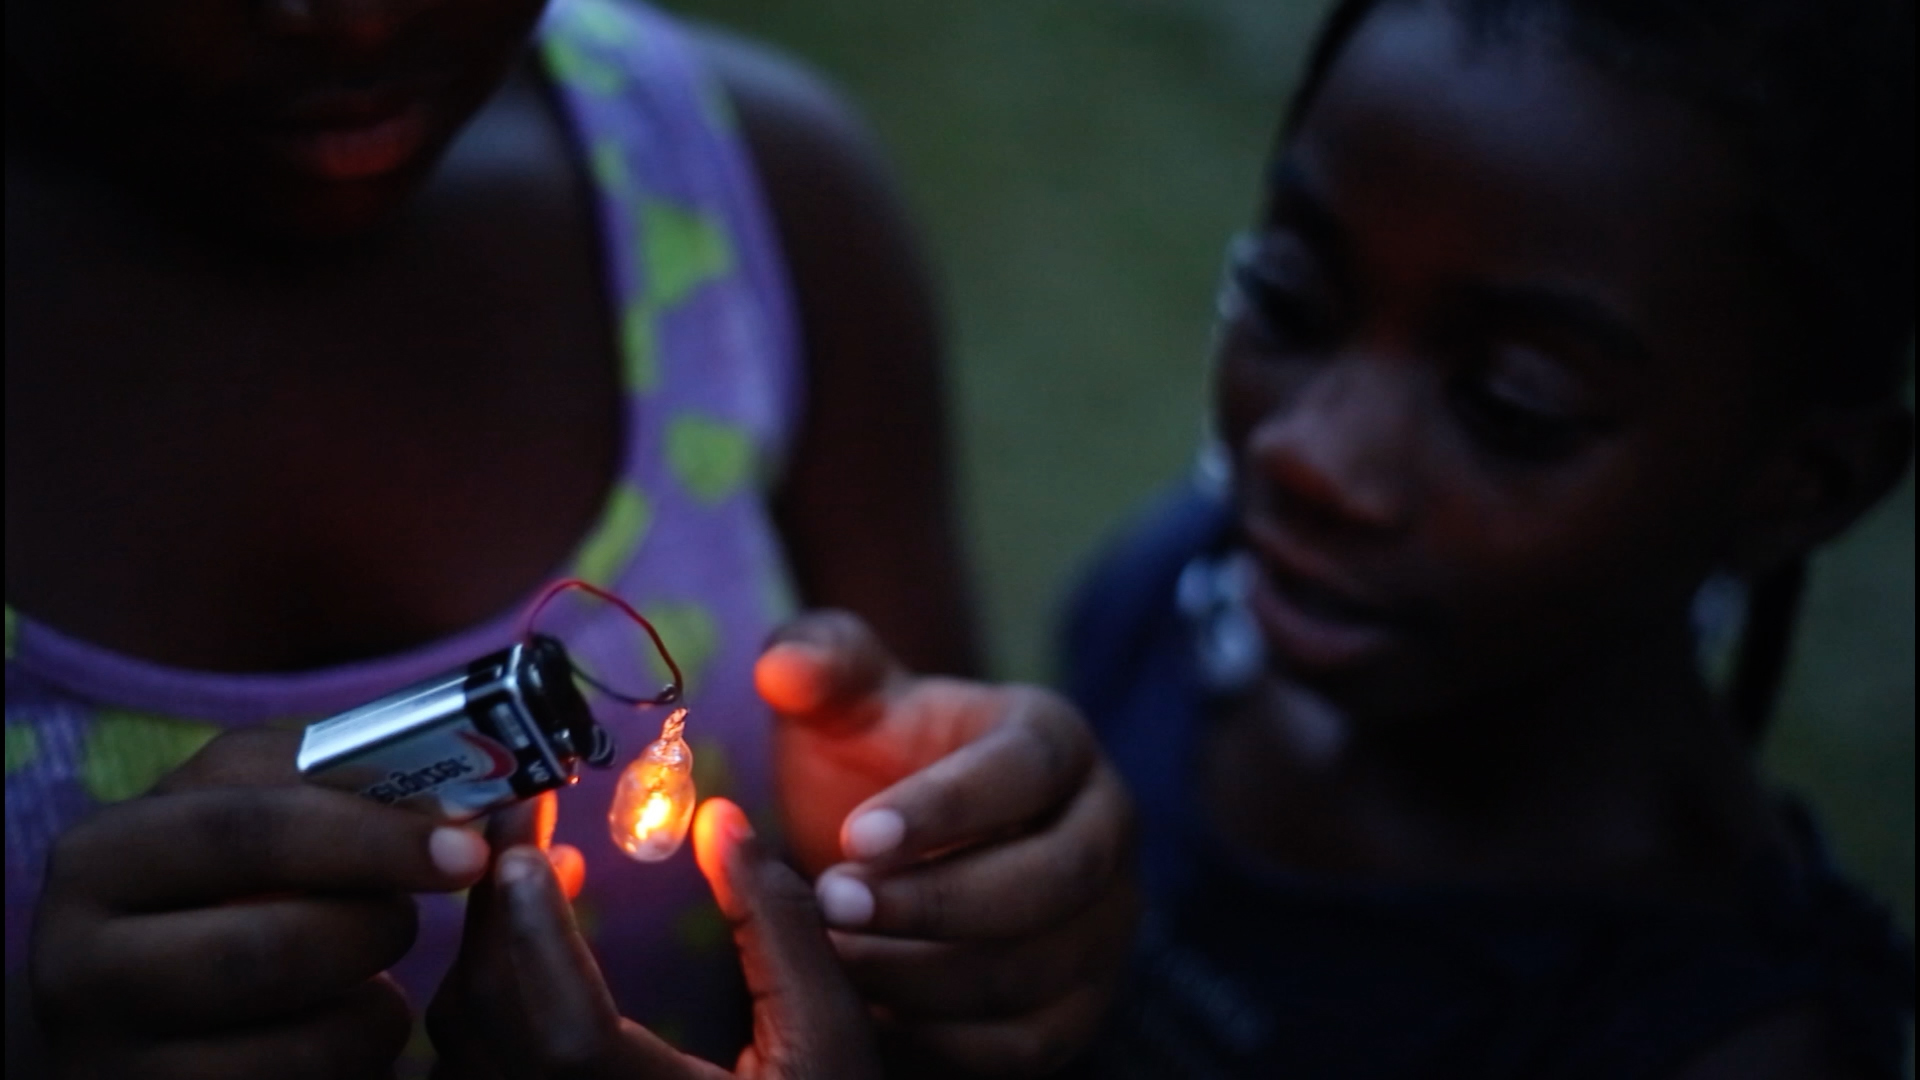 A still of two children powering a small light with a 9-volt battery from the 2018 documentary Hale County This Morning, This Evening by director RaMell Ross